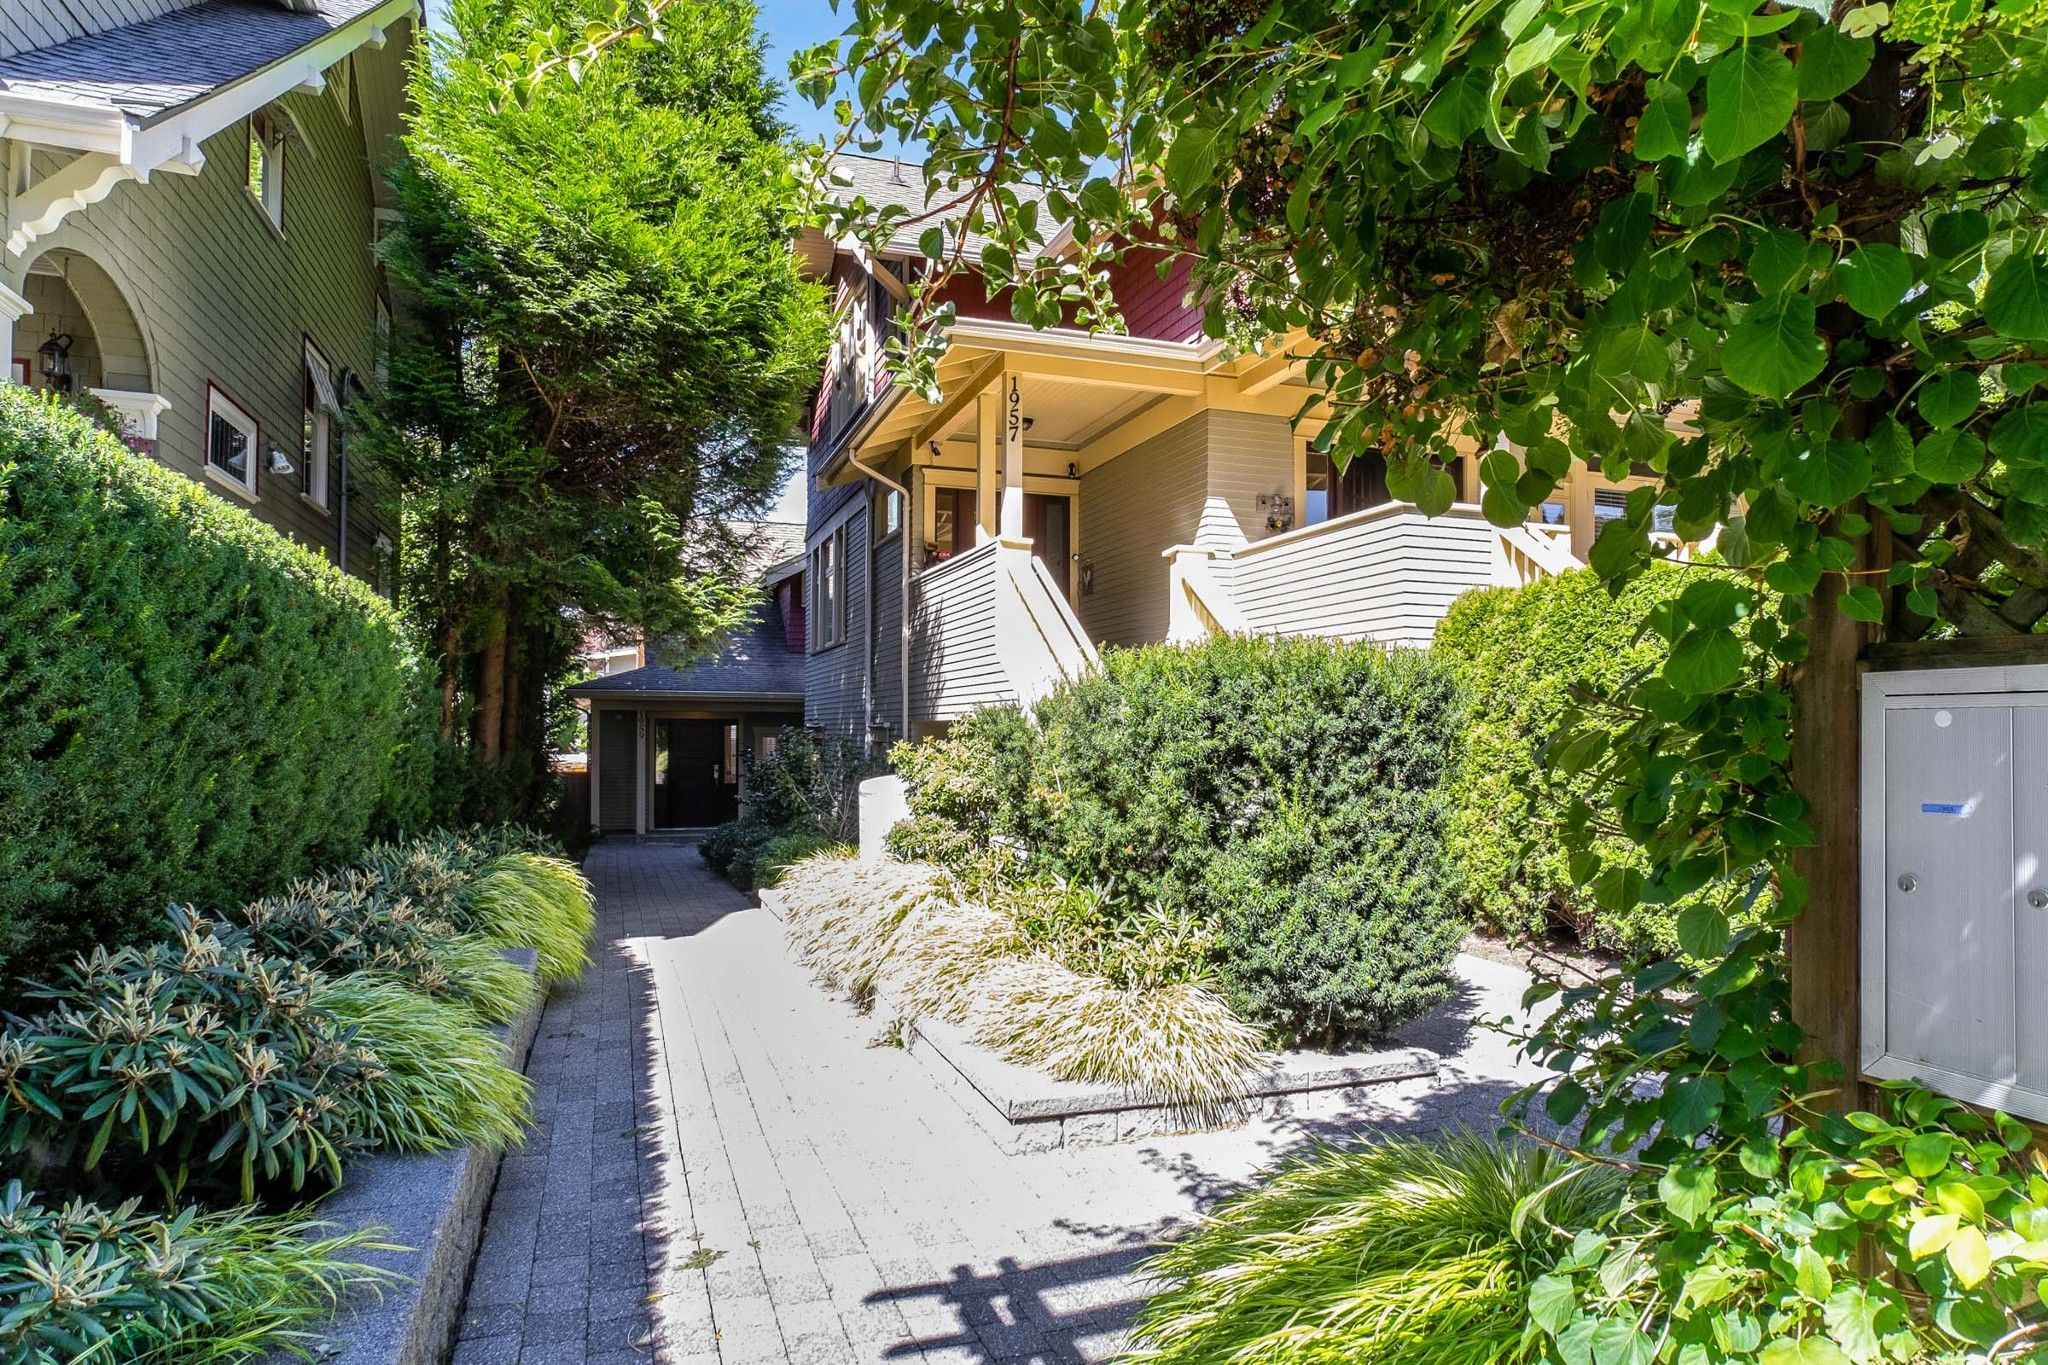 Main Photo: 1959 W 15TH Avenue in Vancouver: Kitsilano Townhouse for sale (Vancouver West)  : MLS®# R2489120